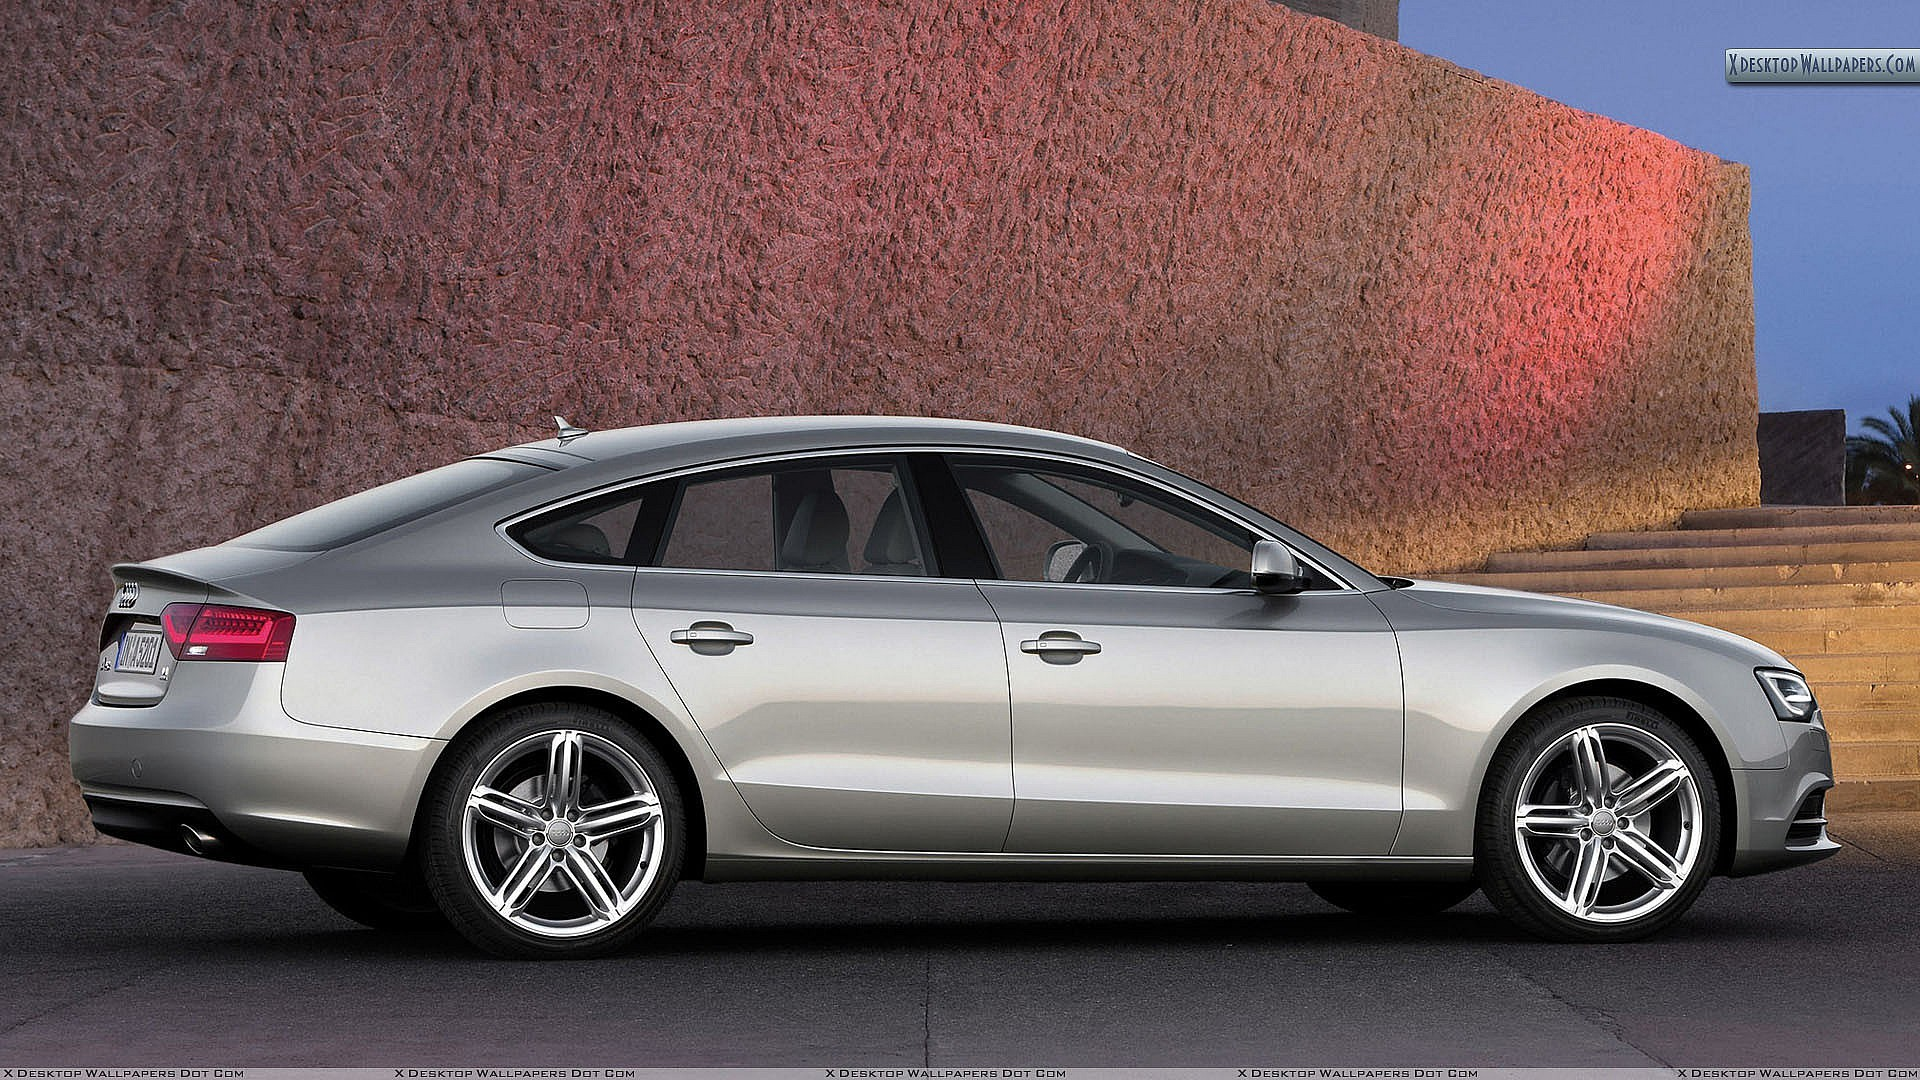 Audi A5 Wallpaper 75 Pictures